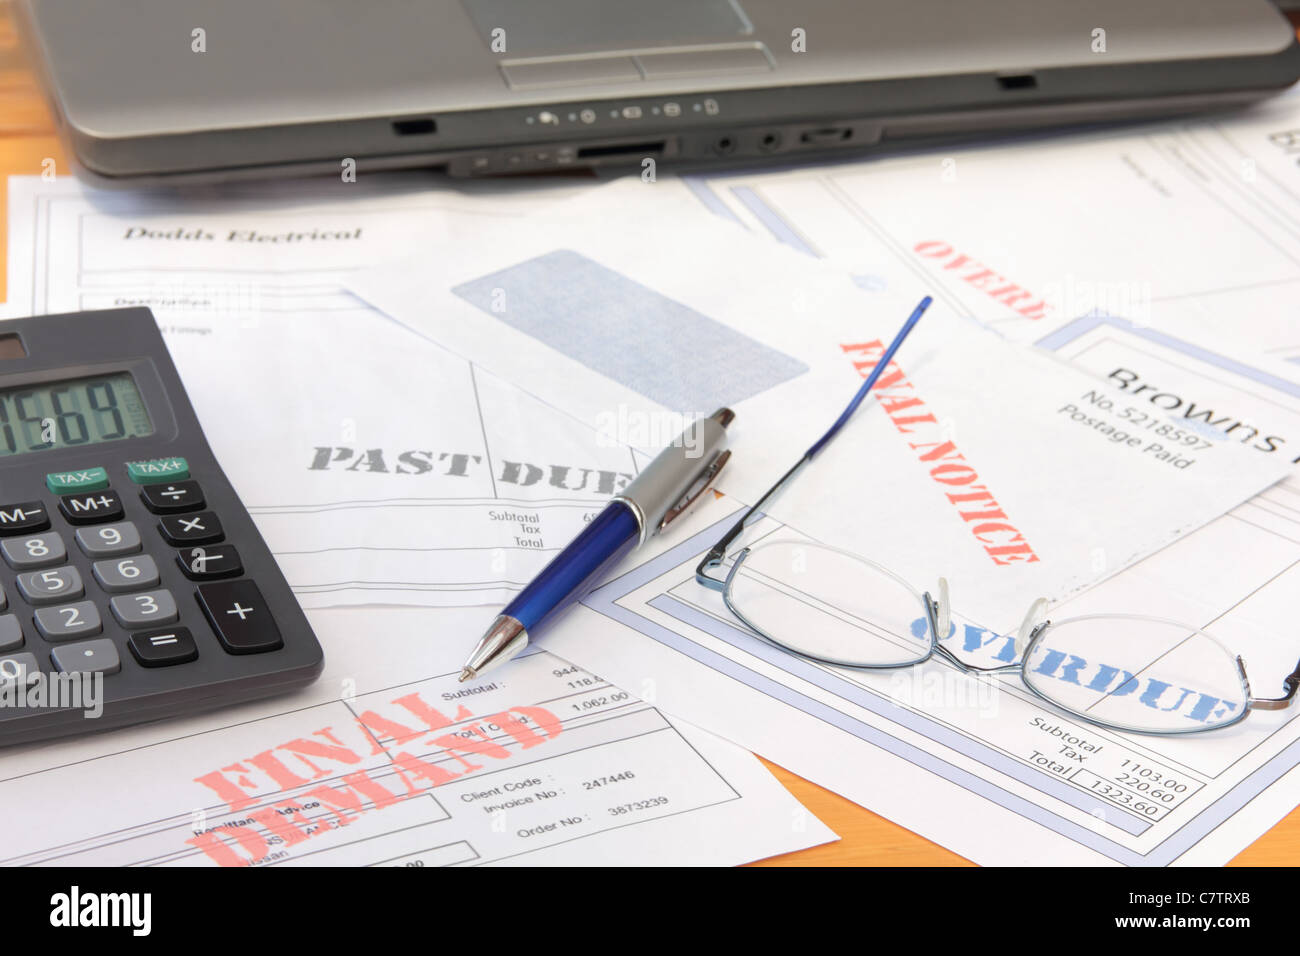 Overdue Bills with Calculator and Laptop - Stock Image